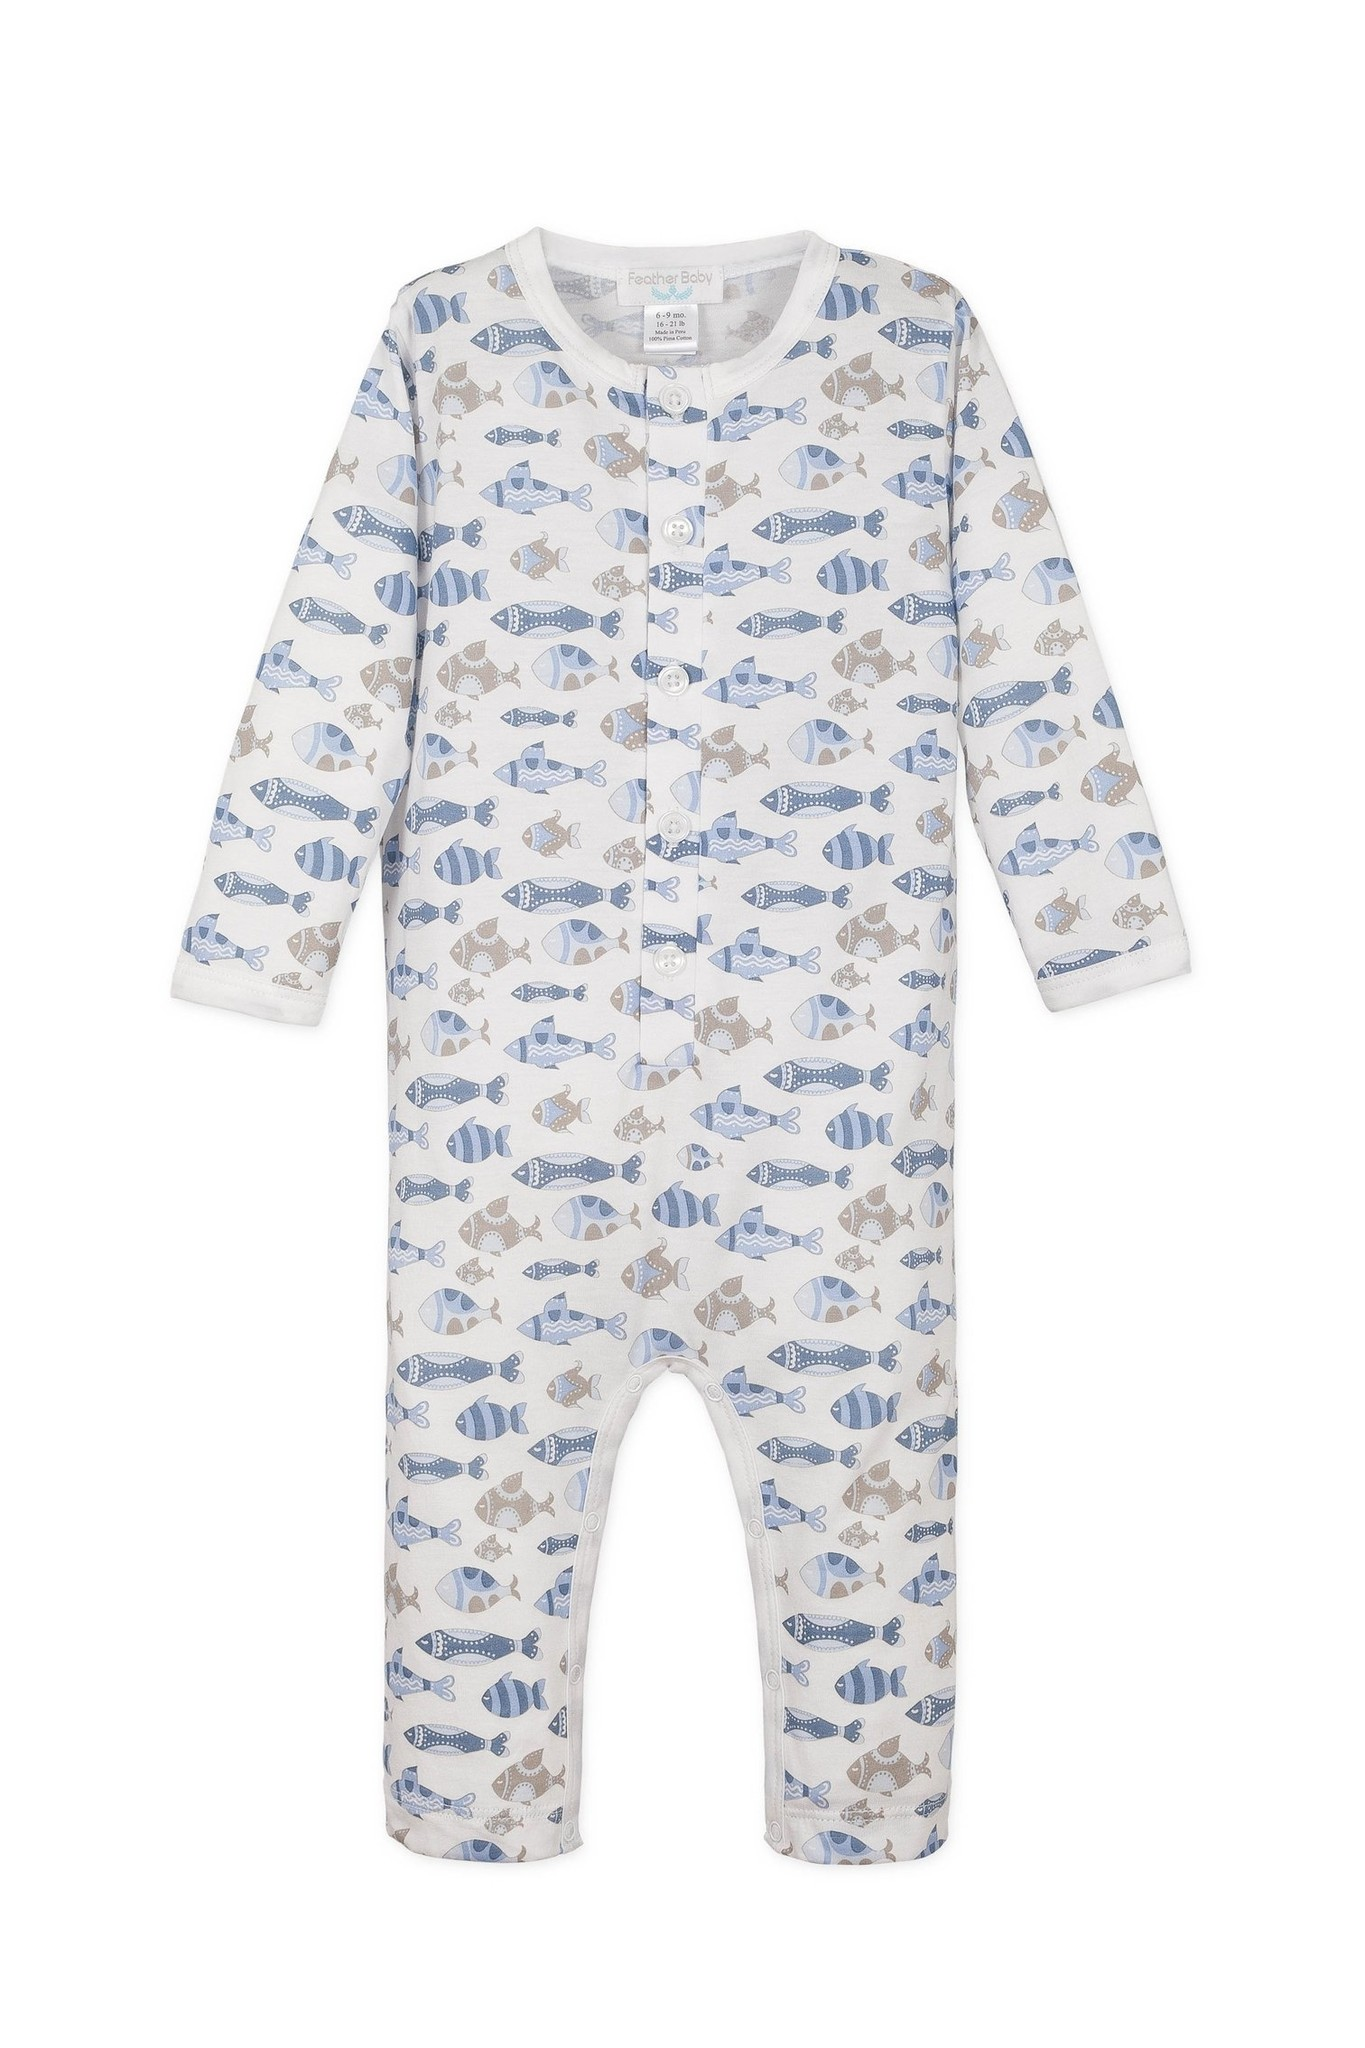 Feather Baby Long John Skinny Fish - Blue on White